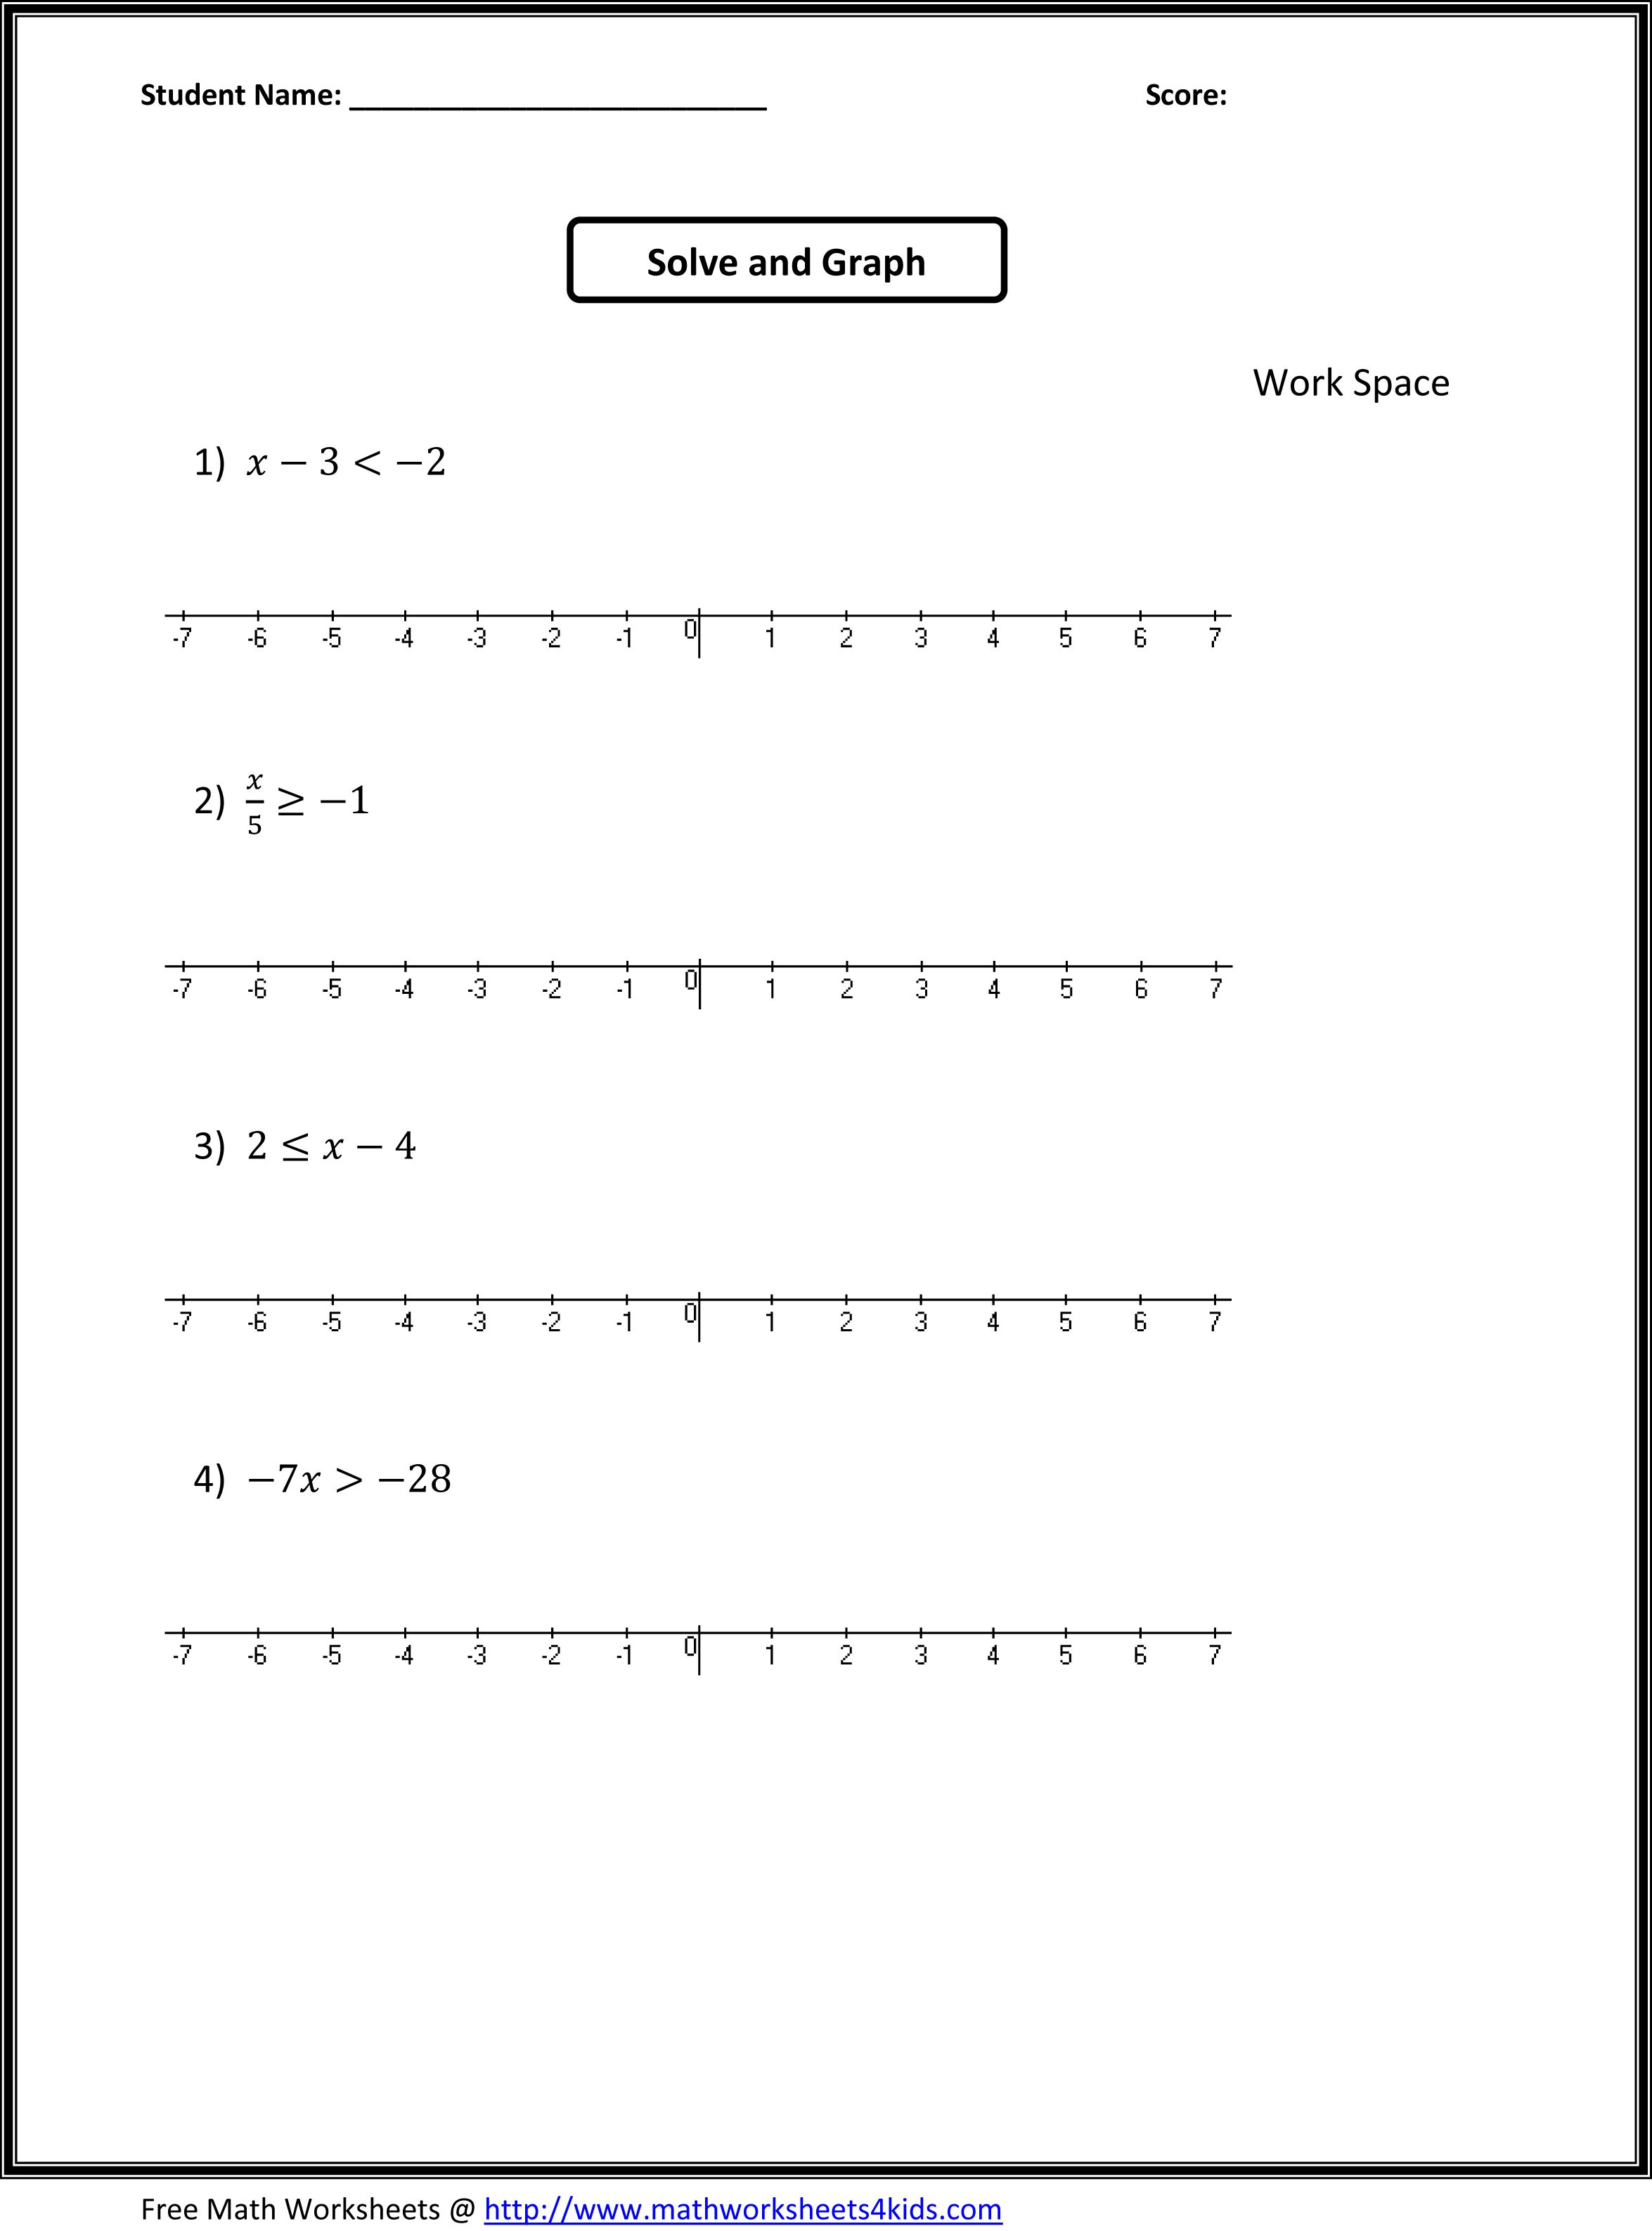 7th Grade Algebra Worksheets 7th Grade Math Worksheets – Eighth Grade Math Worksheets